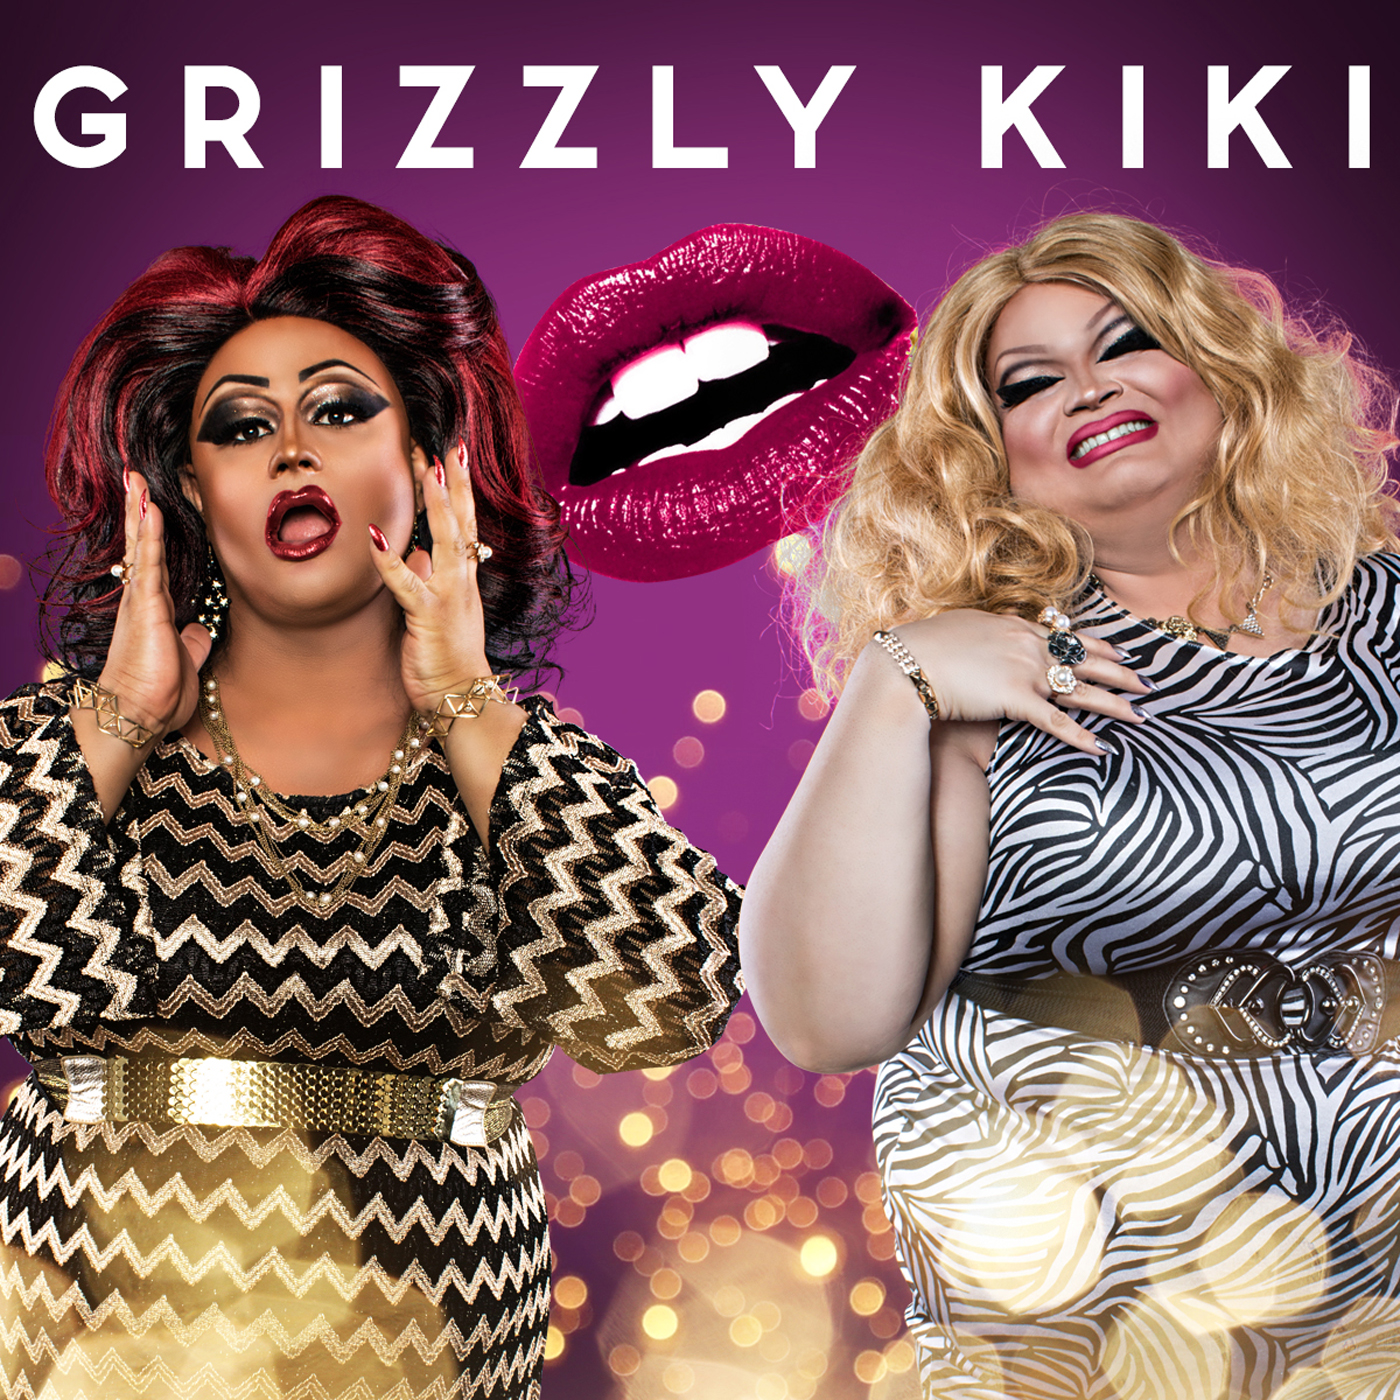 That's Not How Any Of This Works! Grizzly Kiki | Pop Culture